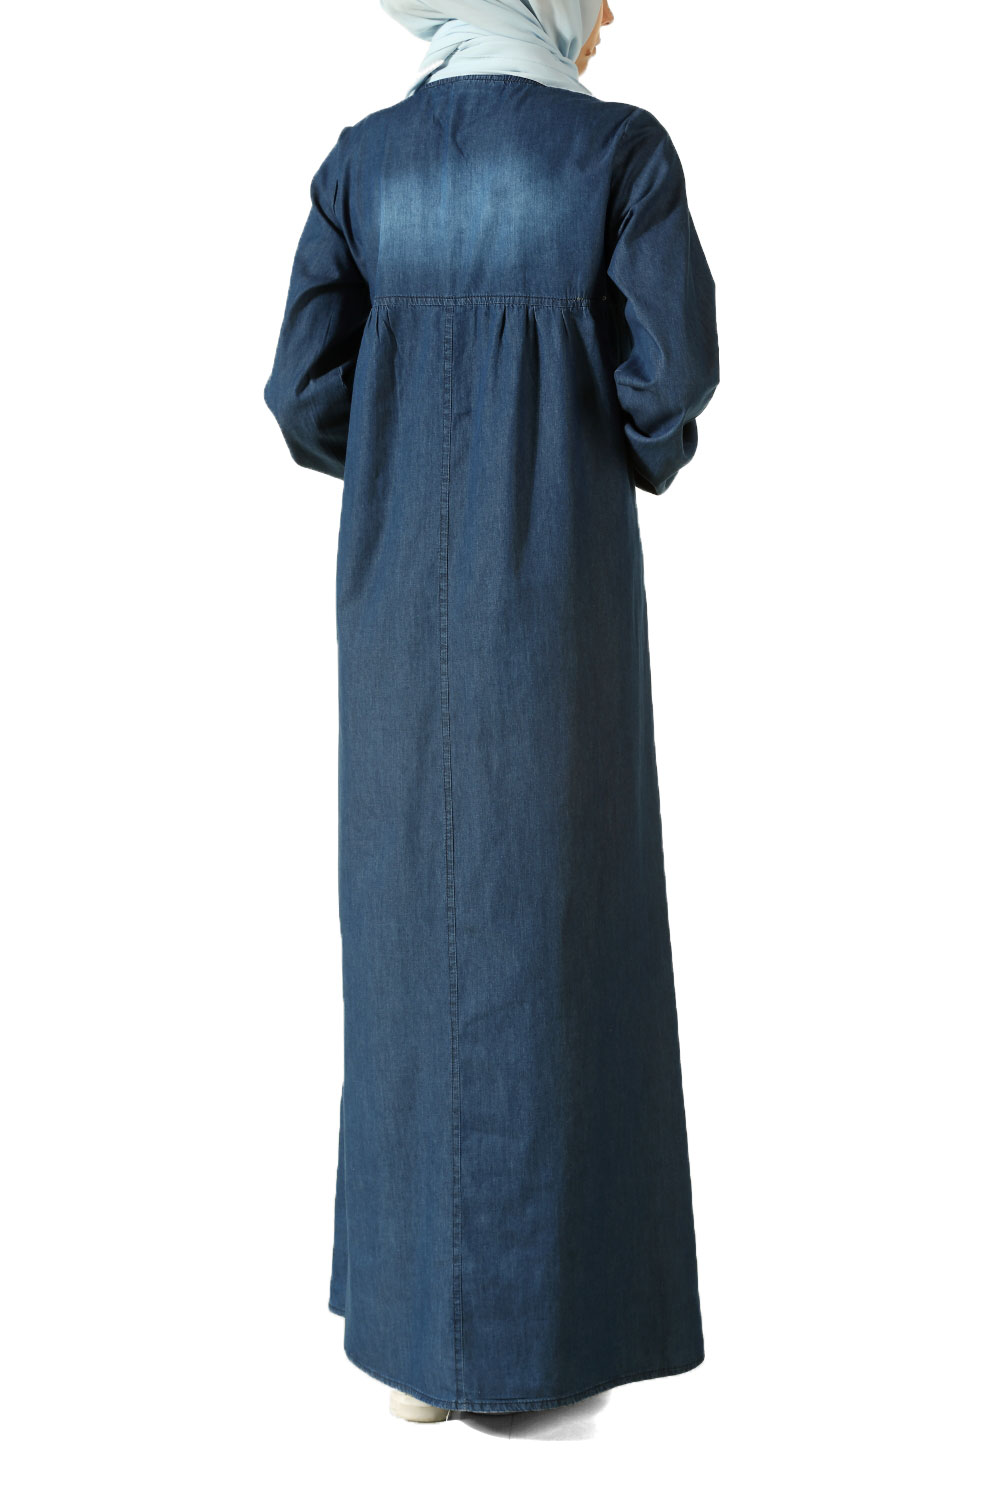 Dark Blue Kot Dress 175 025 Allday